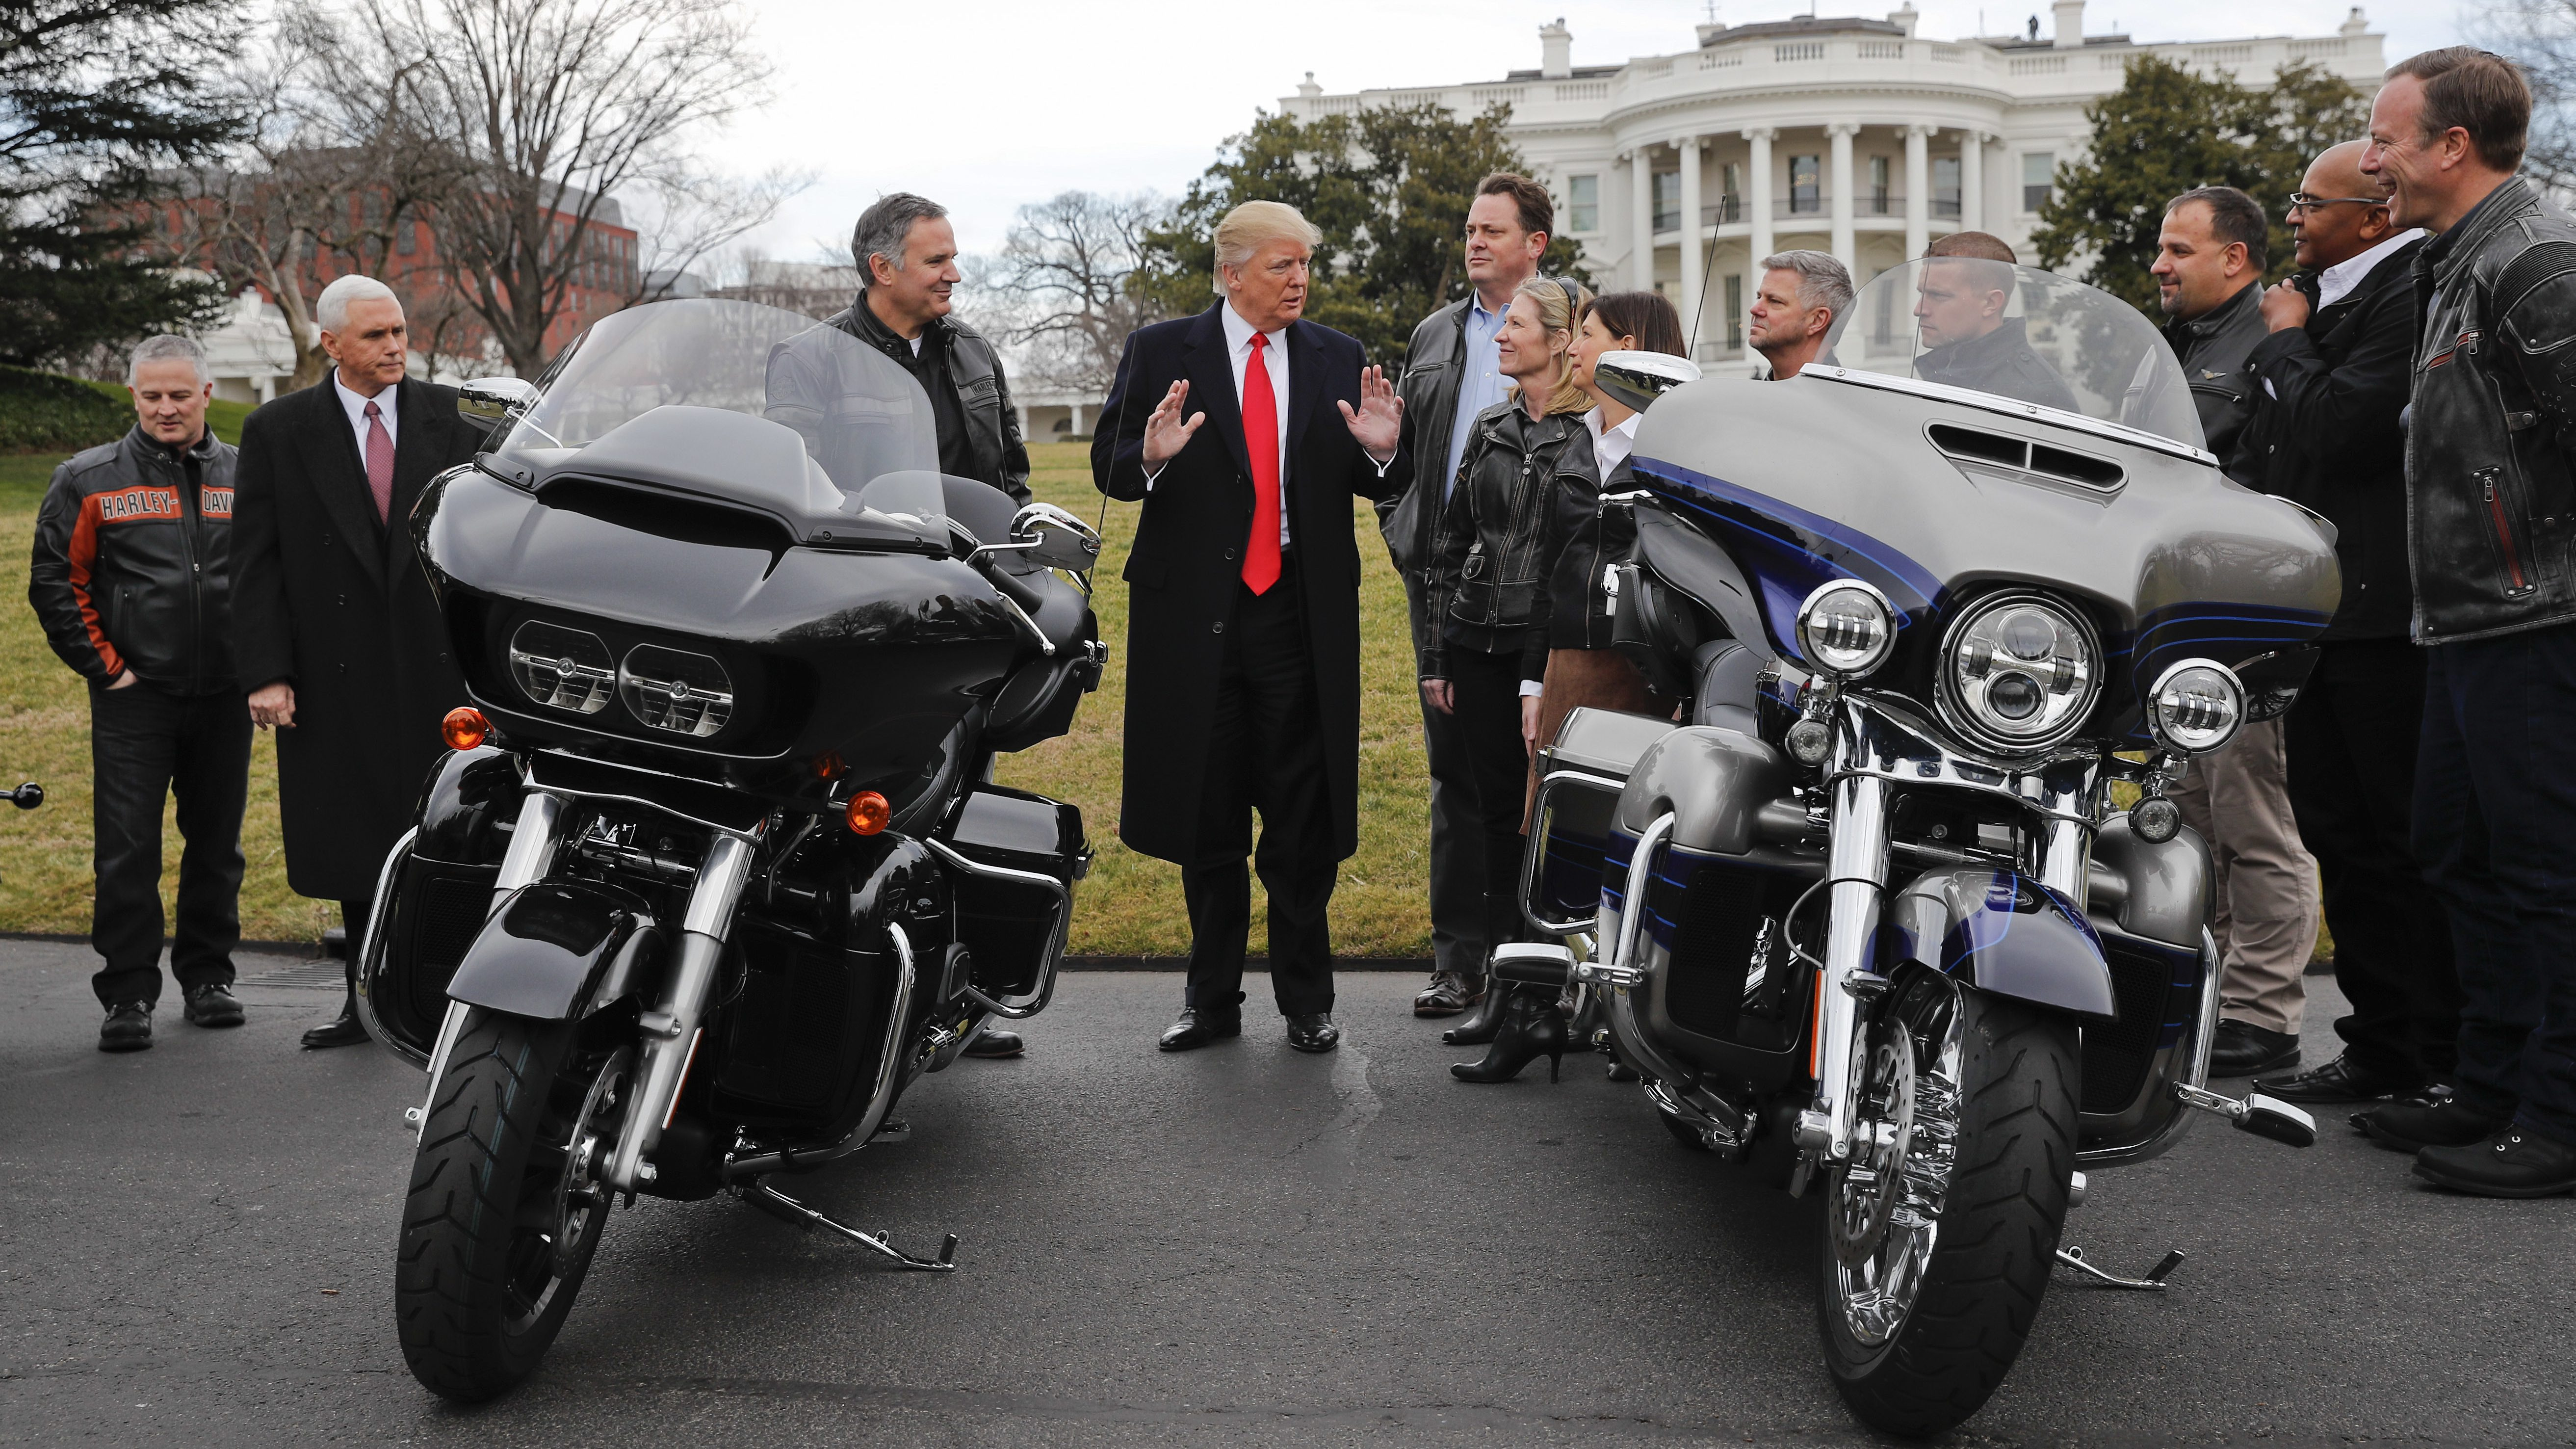 The country Trump mentioned with a tariff on Harley Davidson